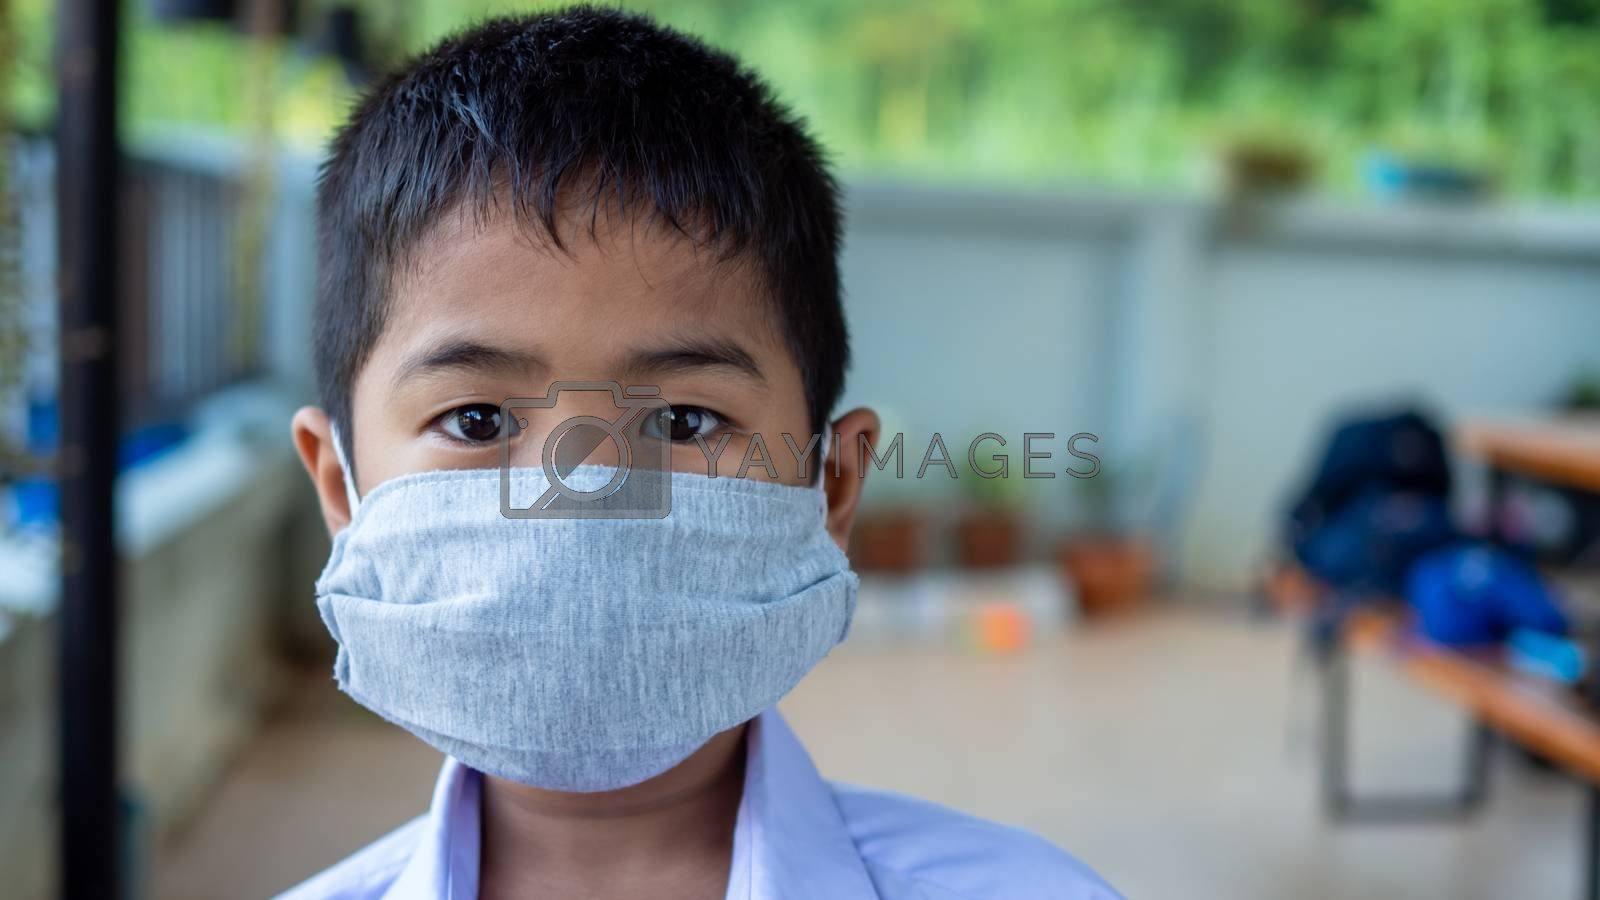 Close-up portrait of a cute boy wearing a protective mask and he by Unimages2527